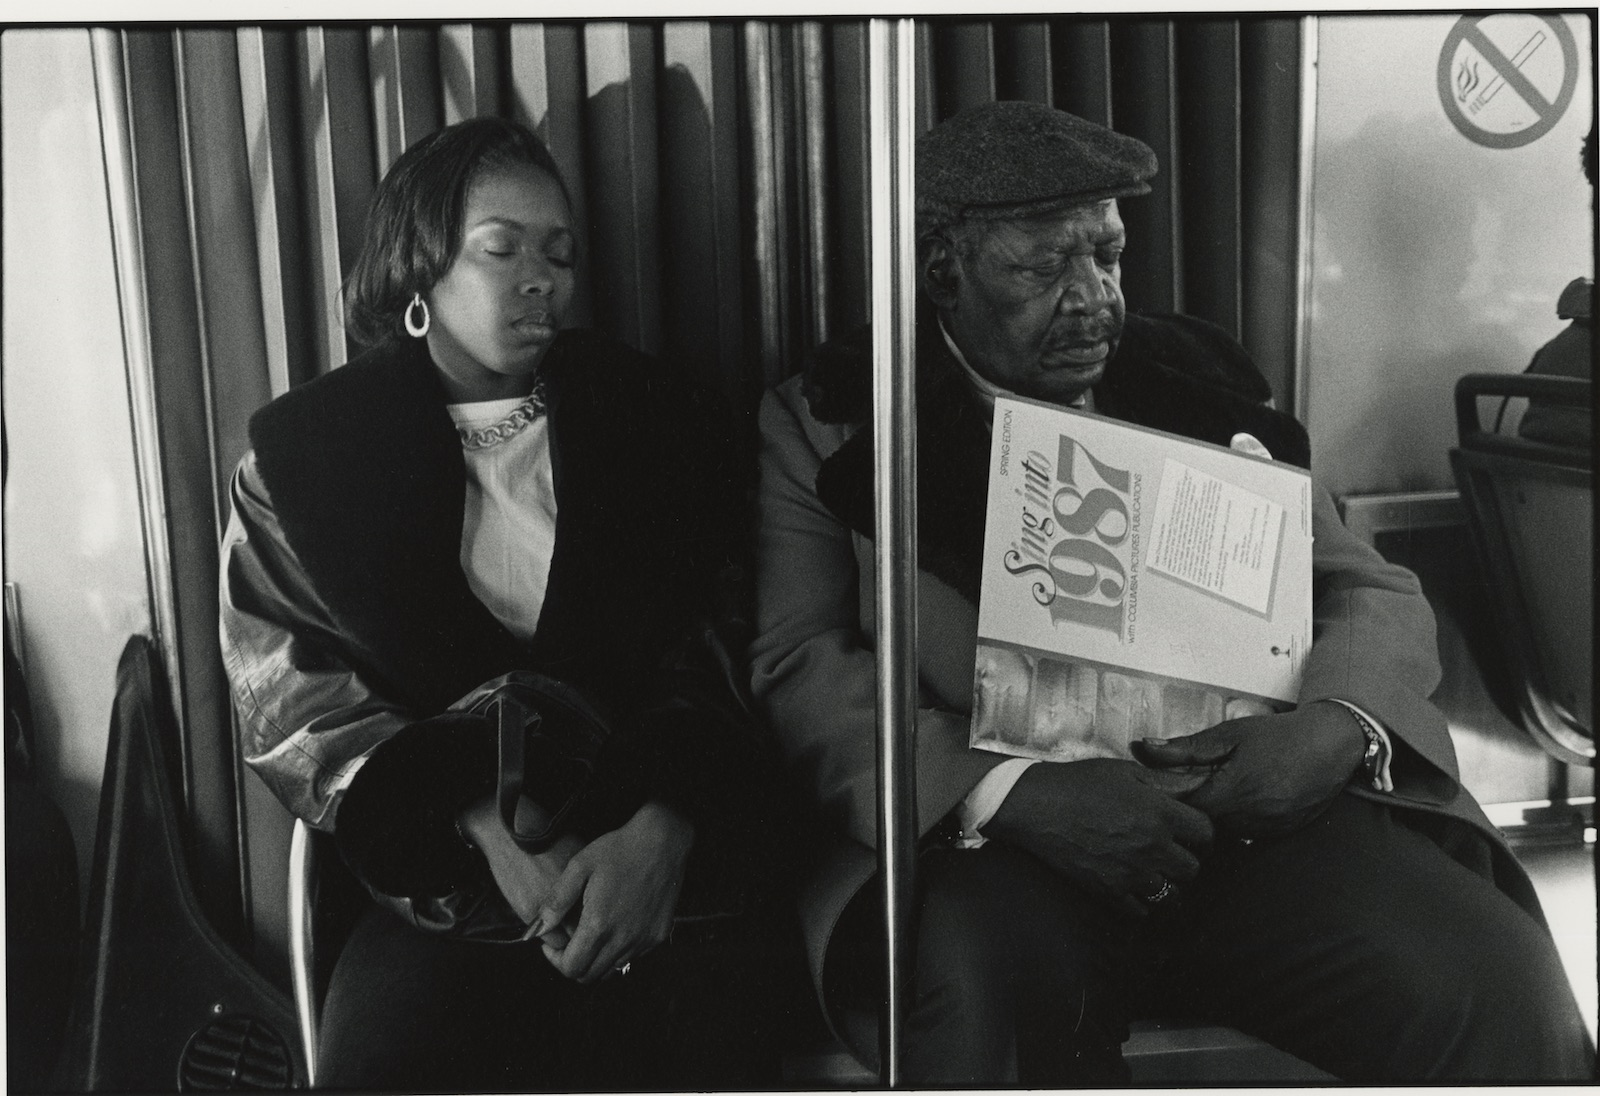 Tom Arndt-Two people on a bus, Chicago